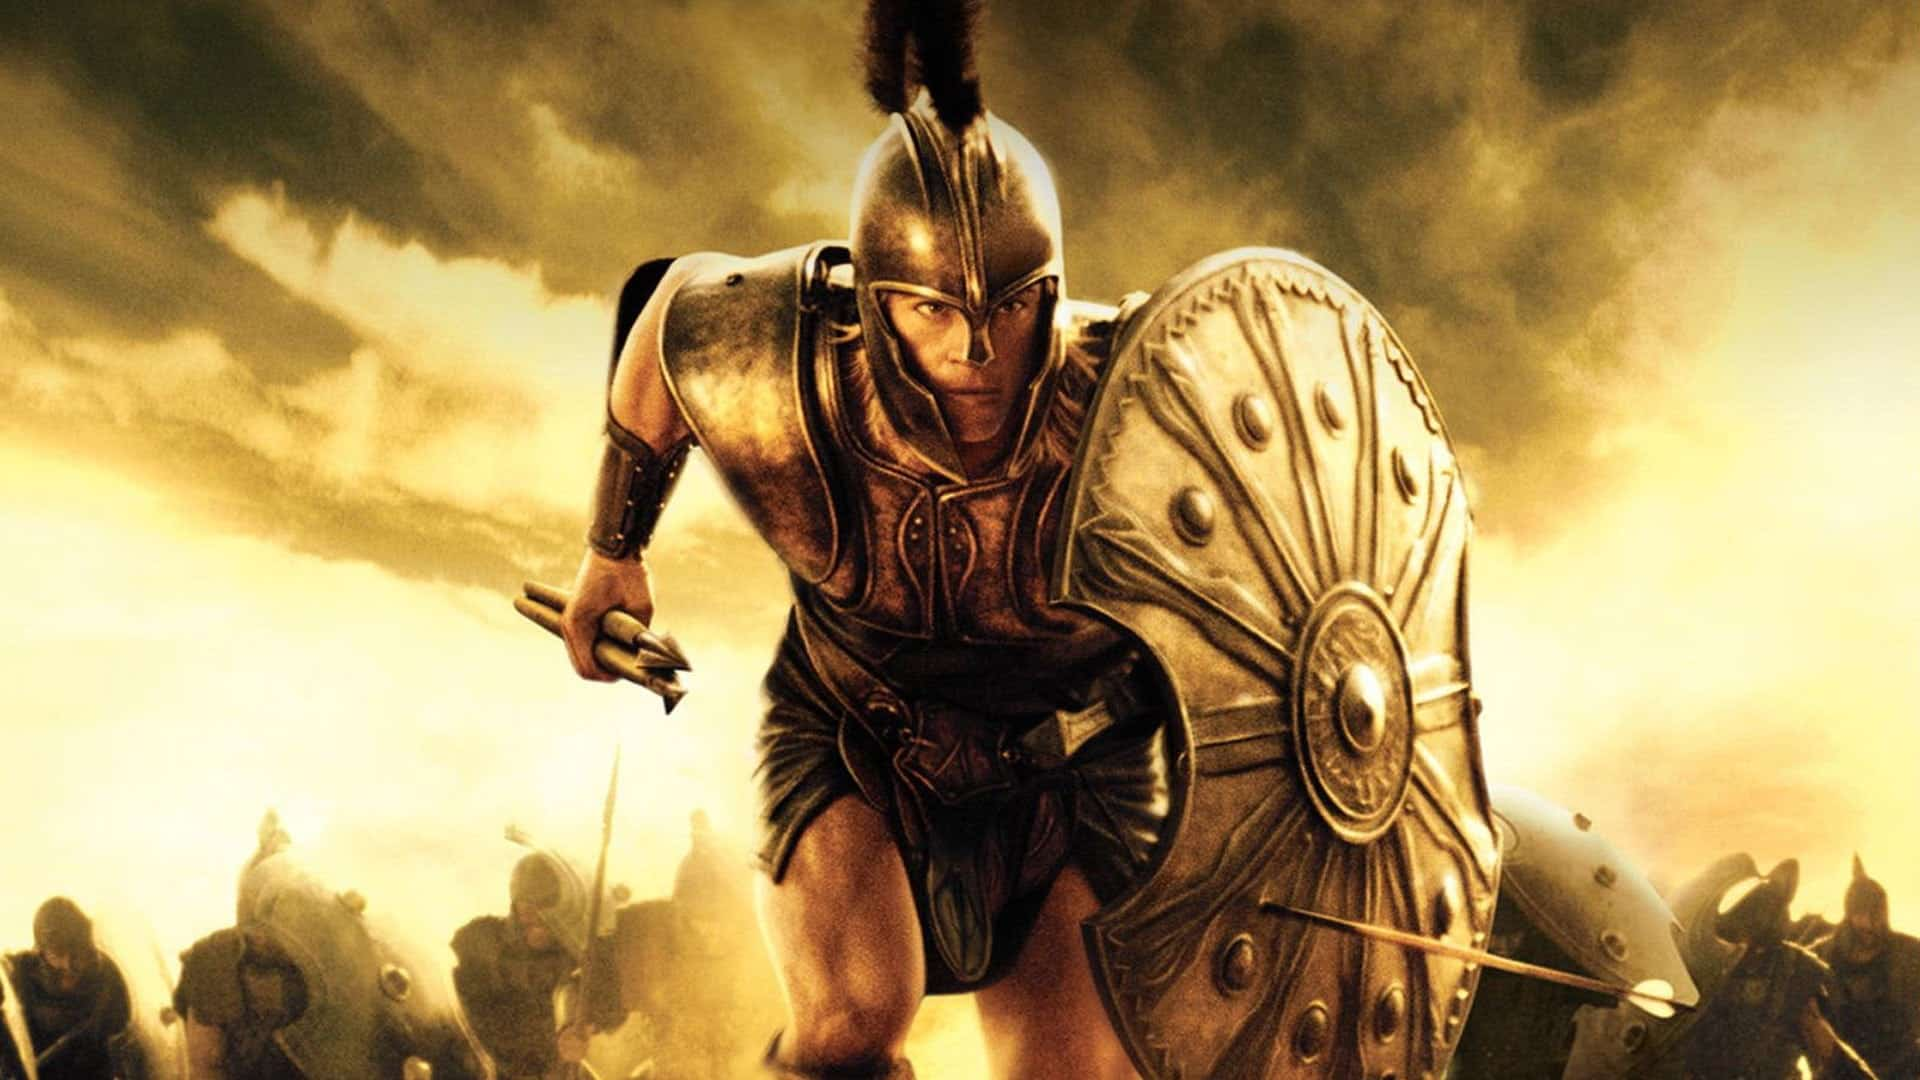 amazing-troy-movie-desktop-background-pictures-new-best-hd-wallpaper-of-troy